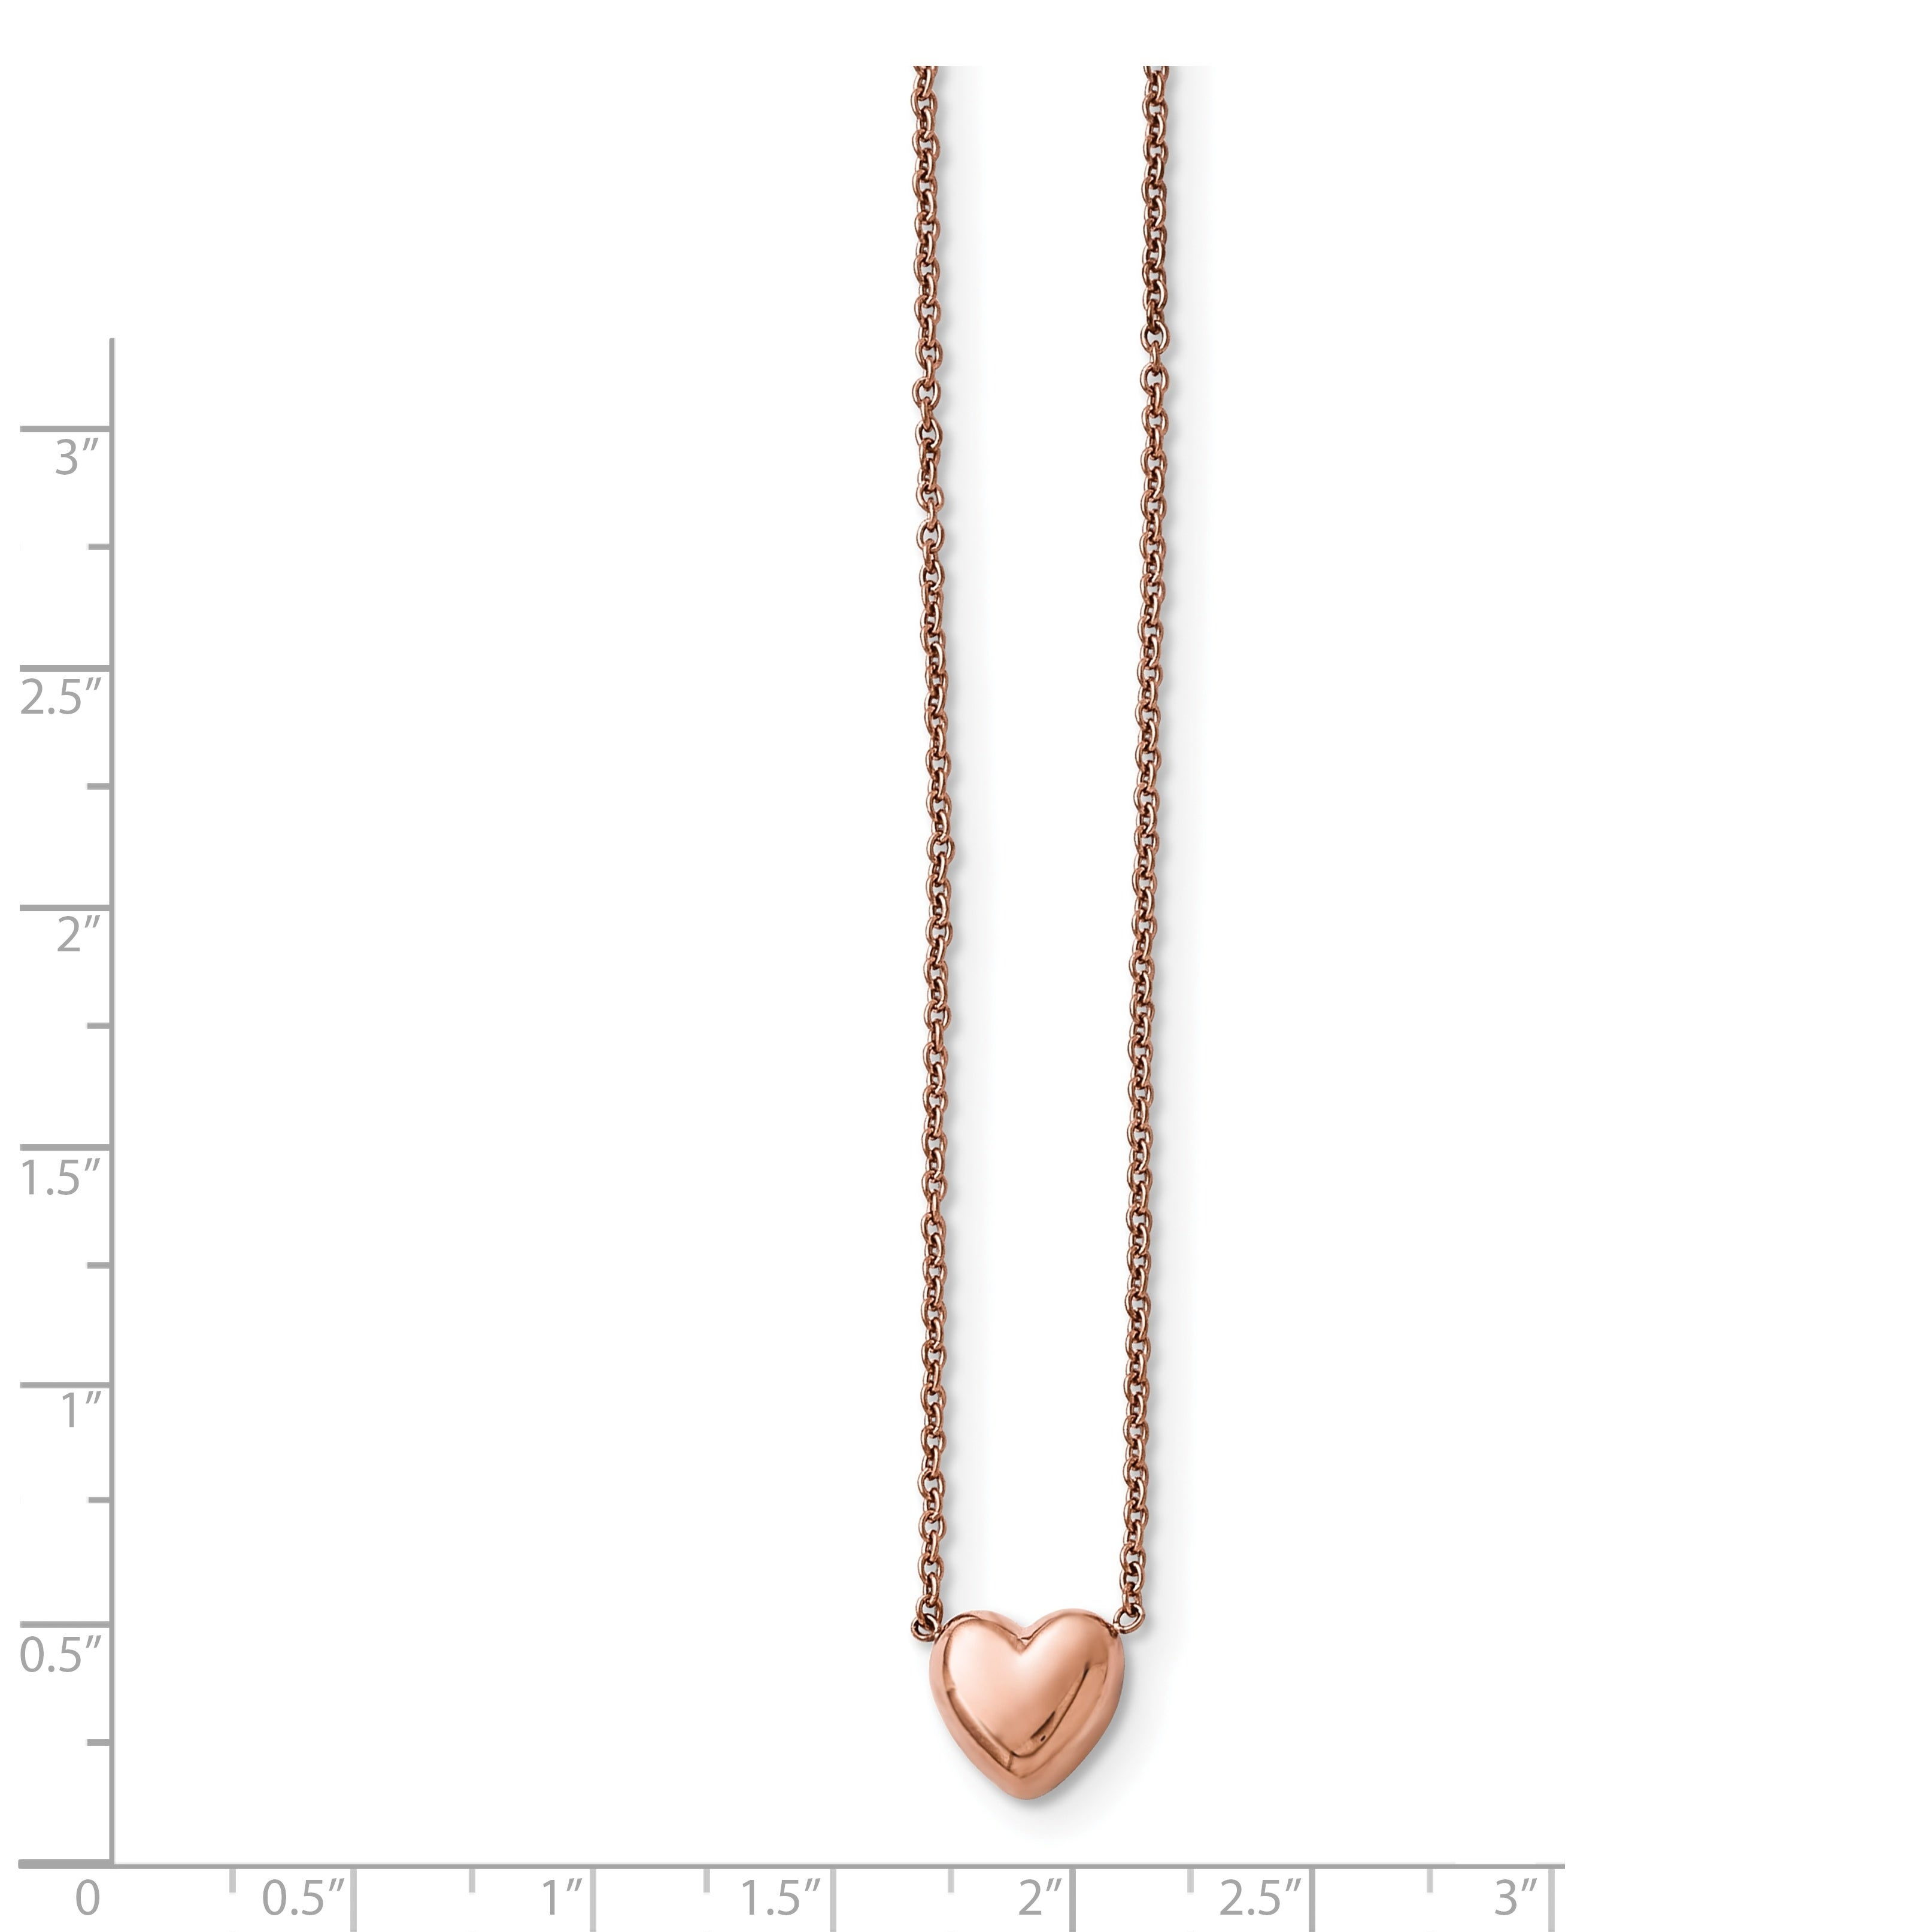 Stainless Steel Rose IP-Plated Fancy Lobster Closure Polished Pink IP-Plated Twisted Heart Necklace 18 Inch